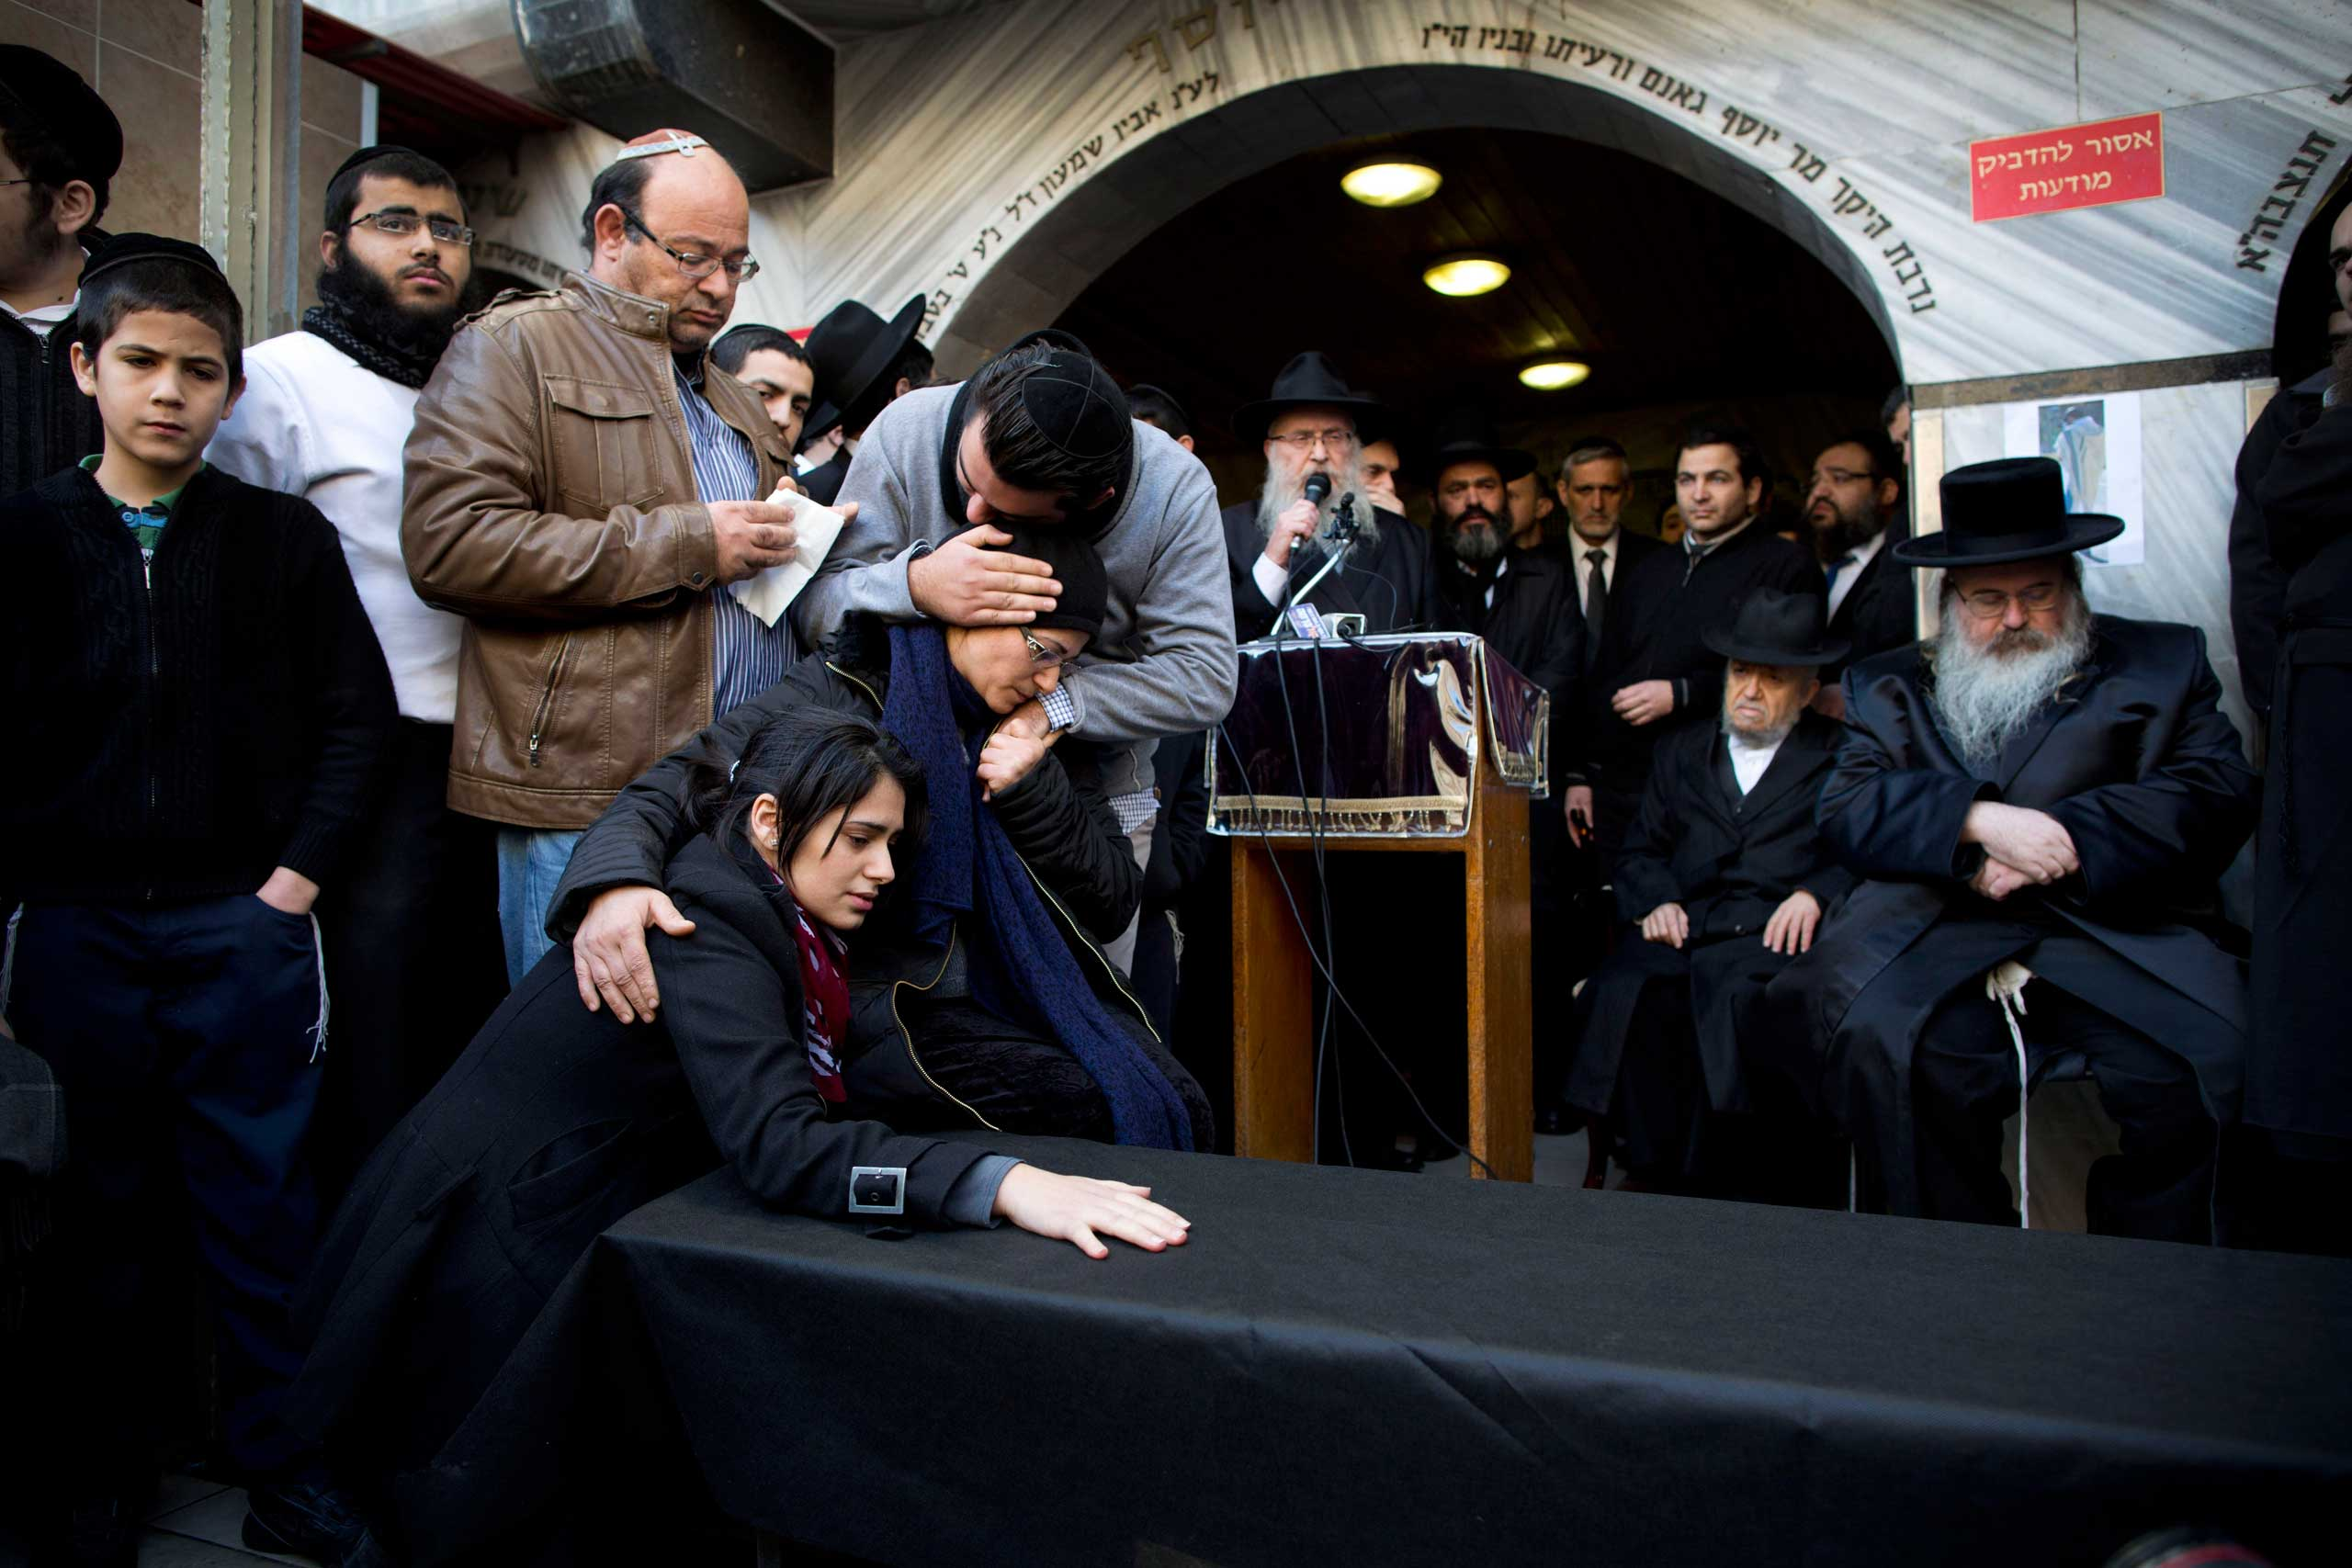 Family and relatives of Yoav Hattab, a Jewish victim of the attack on a kosher grocery store in Paris, gather around a symbolic coffin for his funeral procession in Bnei Brak, near Tel Aviv, Israel,  on Jan. 13, 2015.